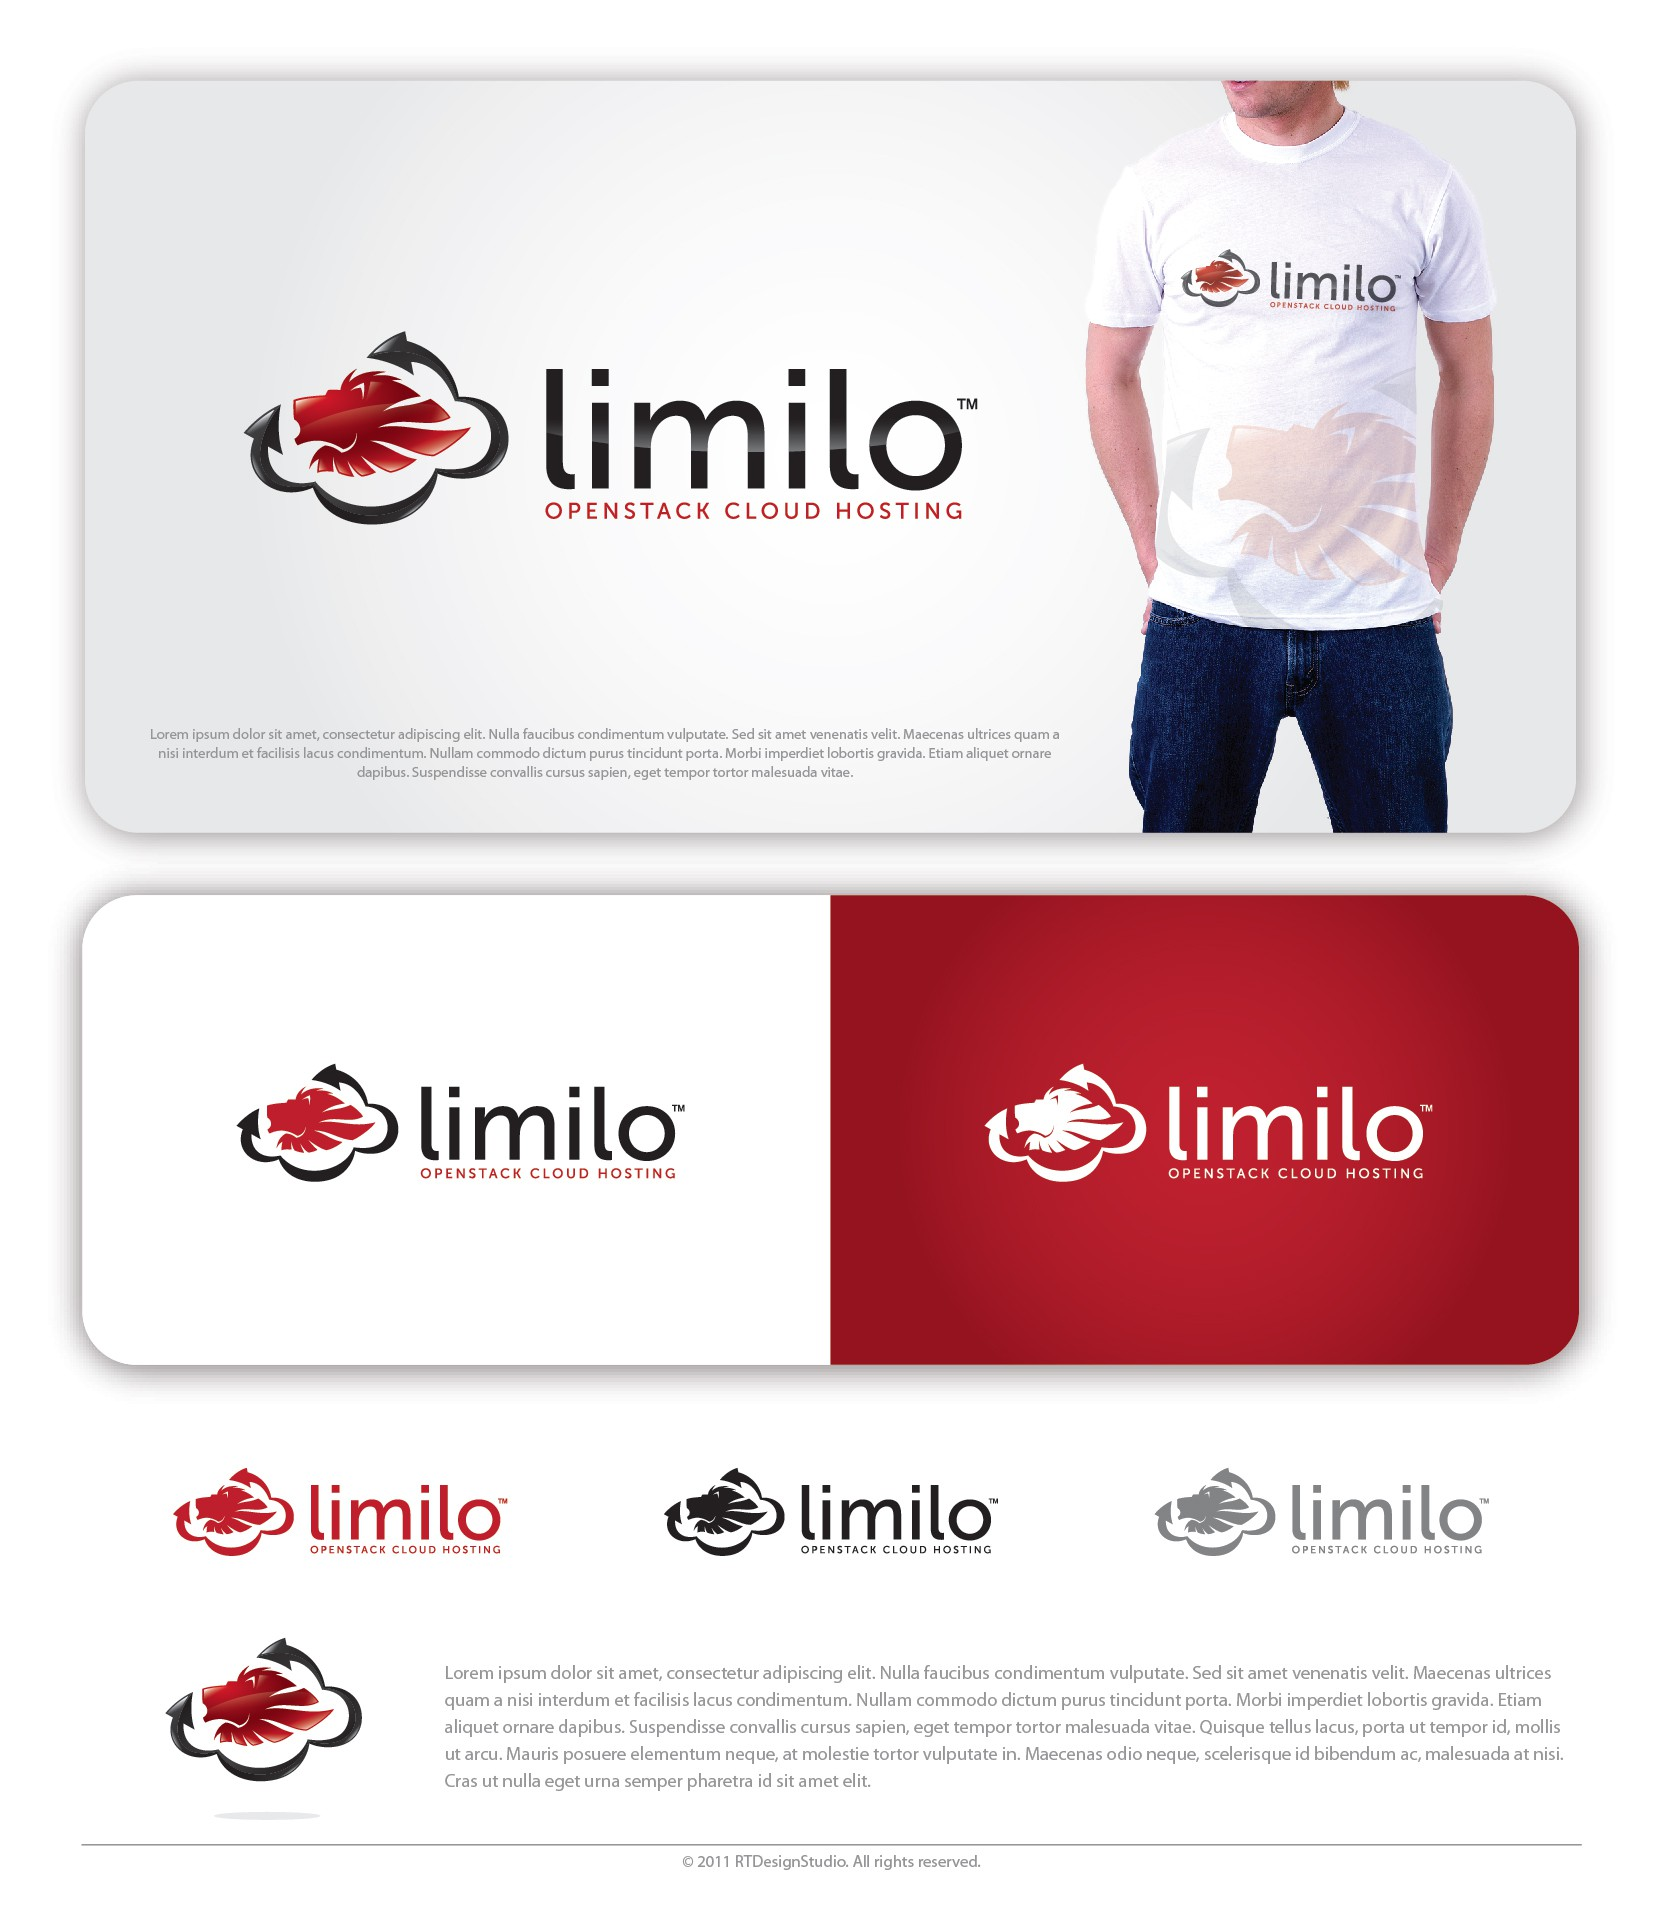 Please design a logo for limilo